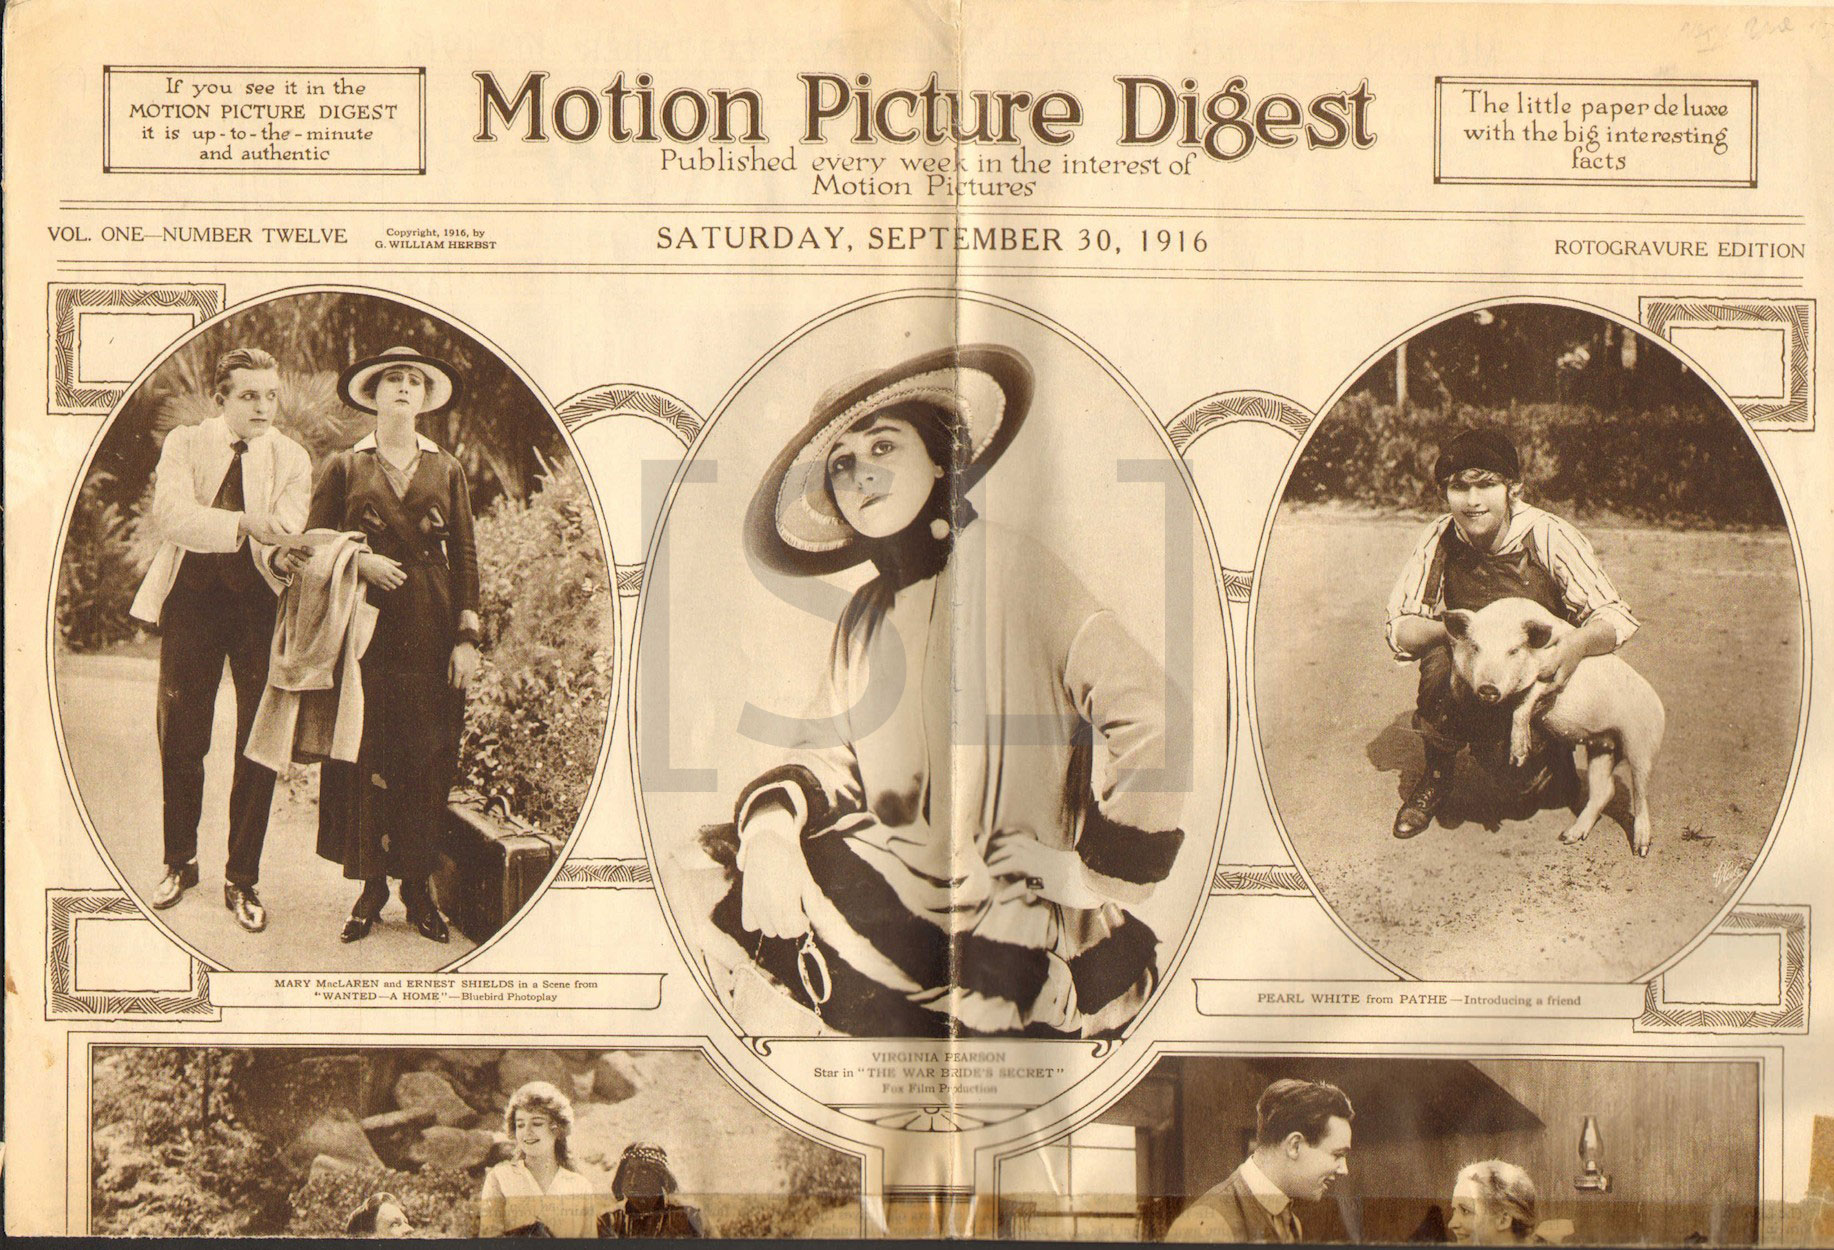 Motion Picture Digest